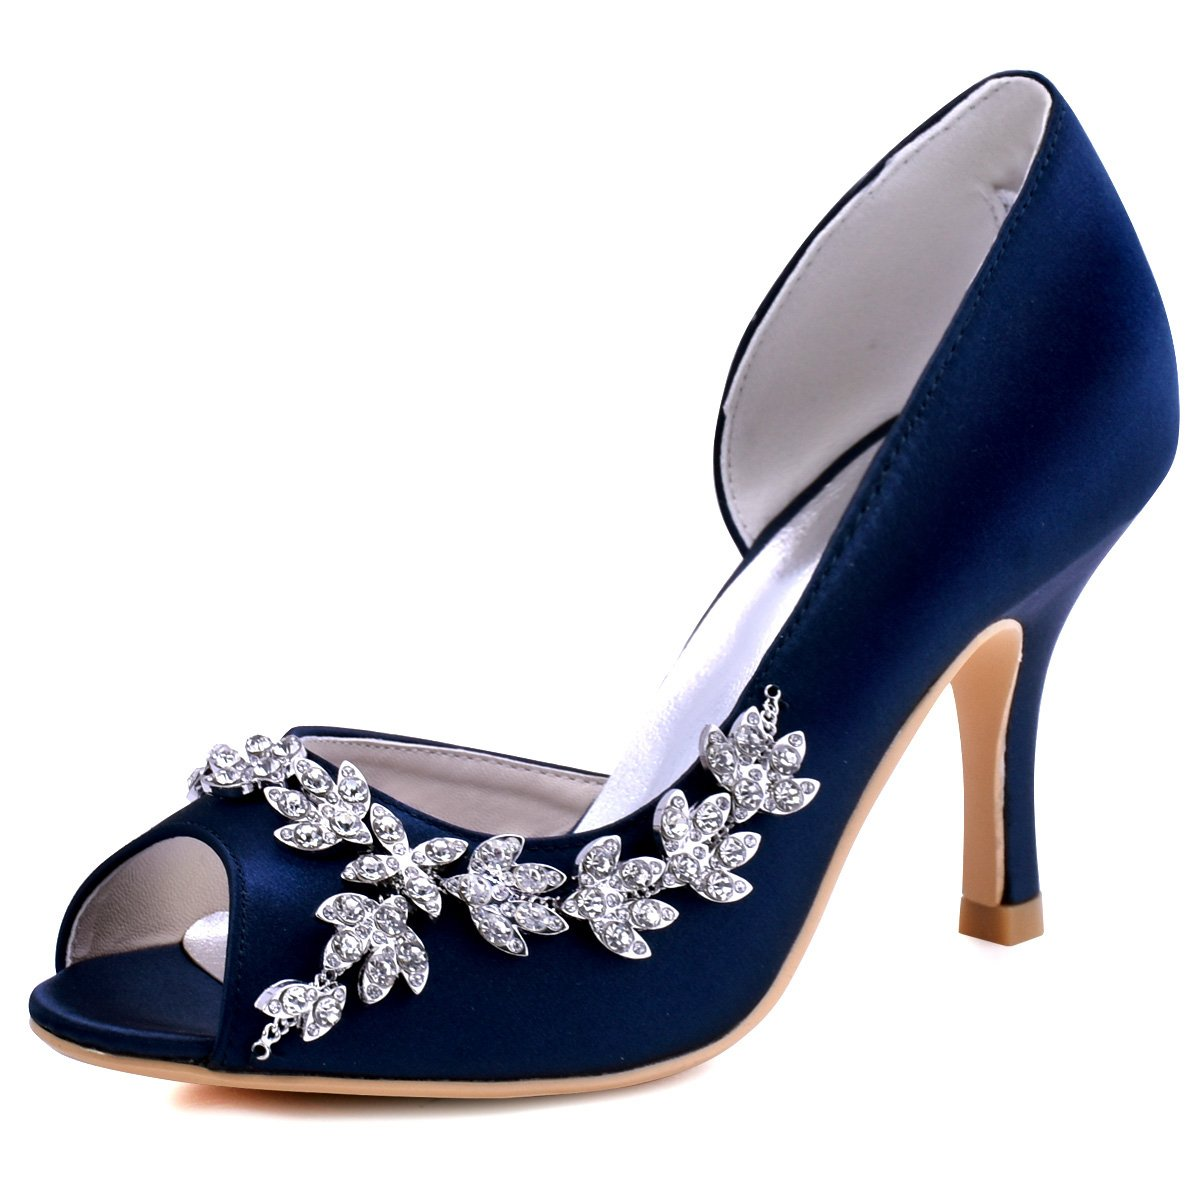 ElegantPark HP1542 Women Peep Toe Rhinestones Pumps High Heel Satin Wedding Bridal Dress Shoes Navy Blue US 9